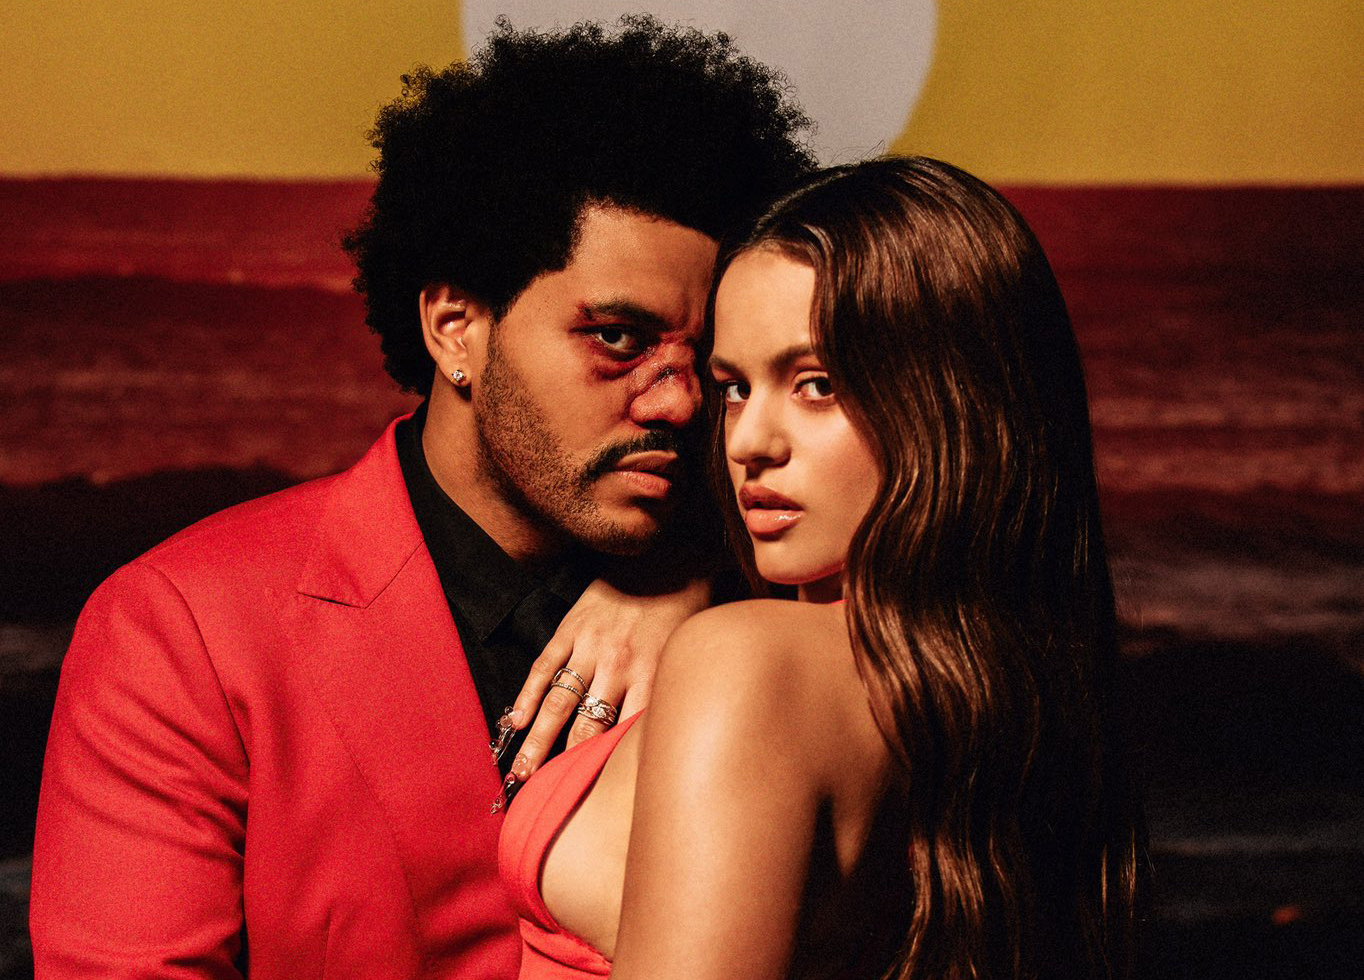 Rosalía y The Weeknd lanzan un remix de 'Blinding lights'.